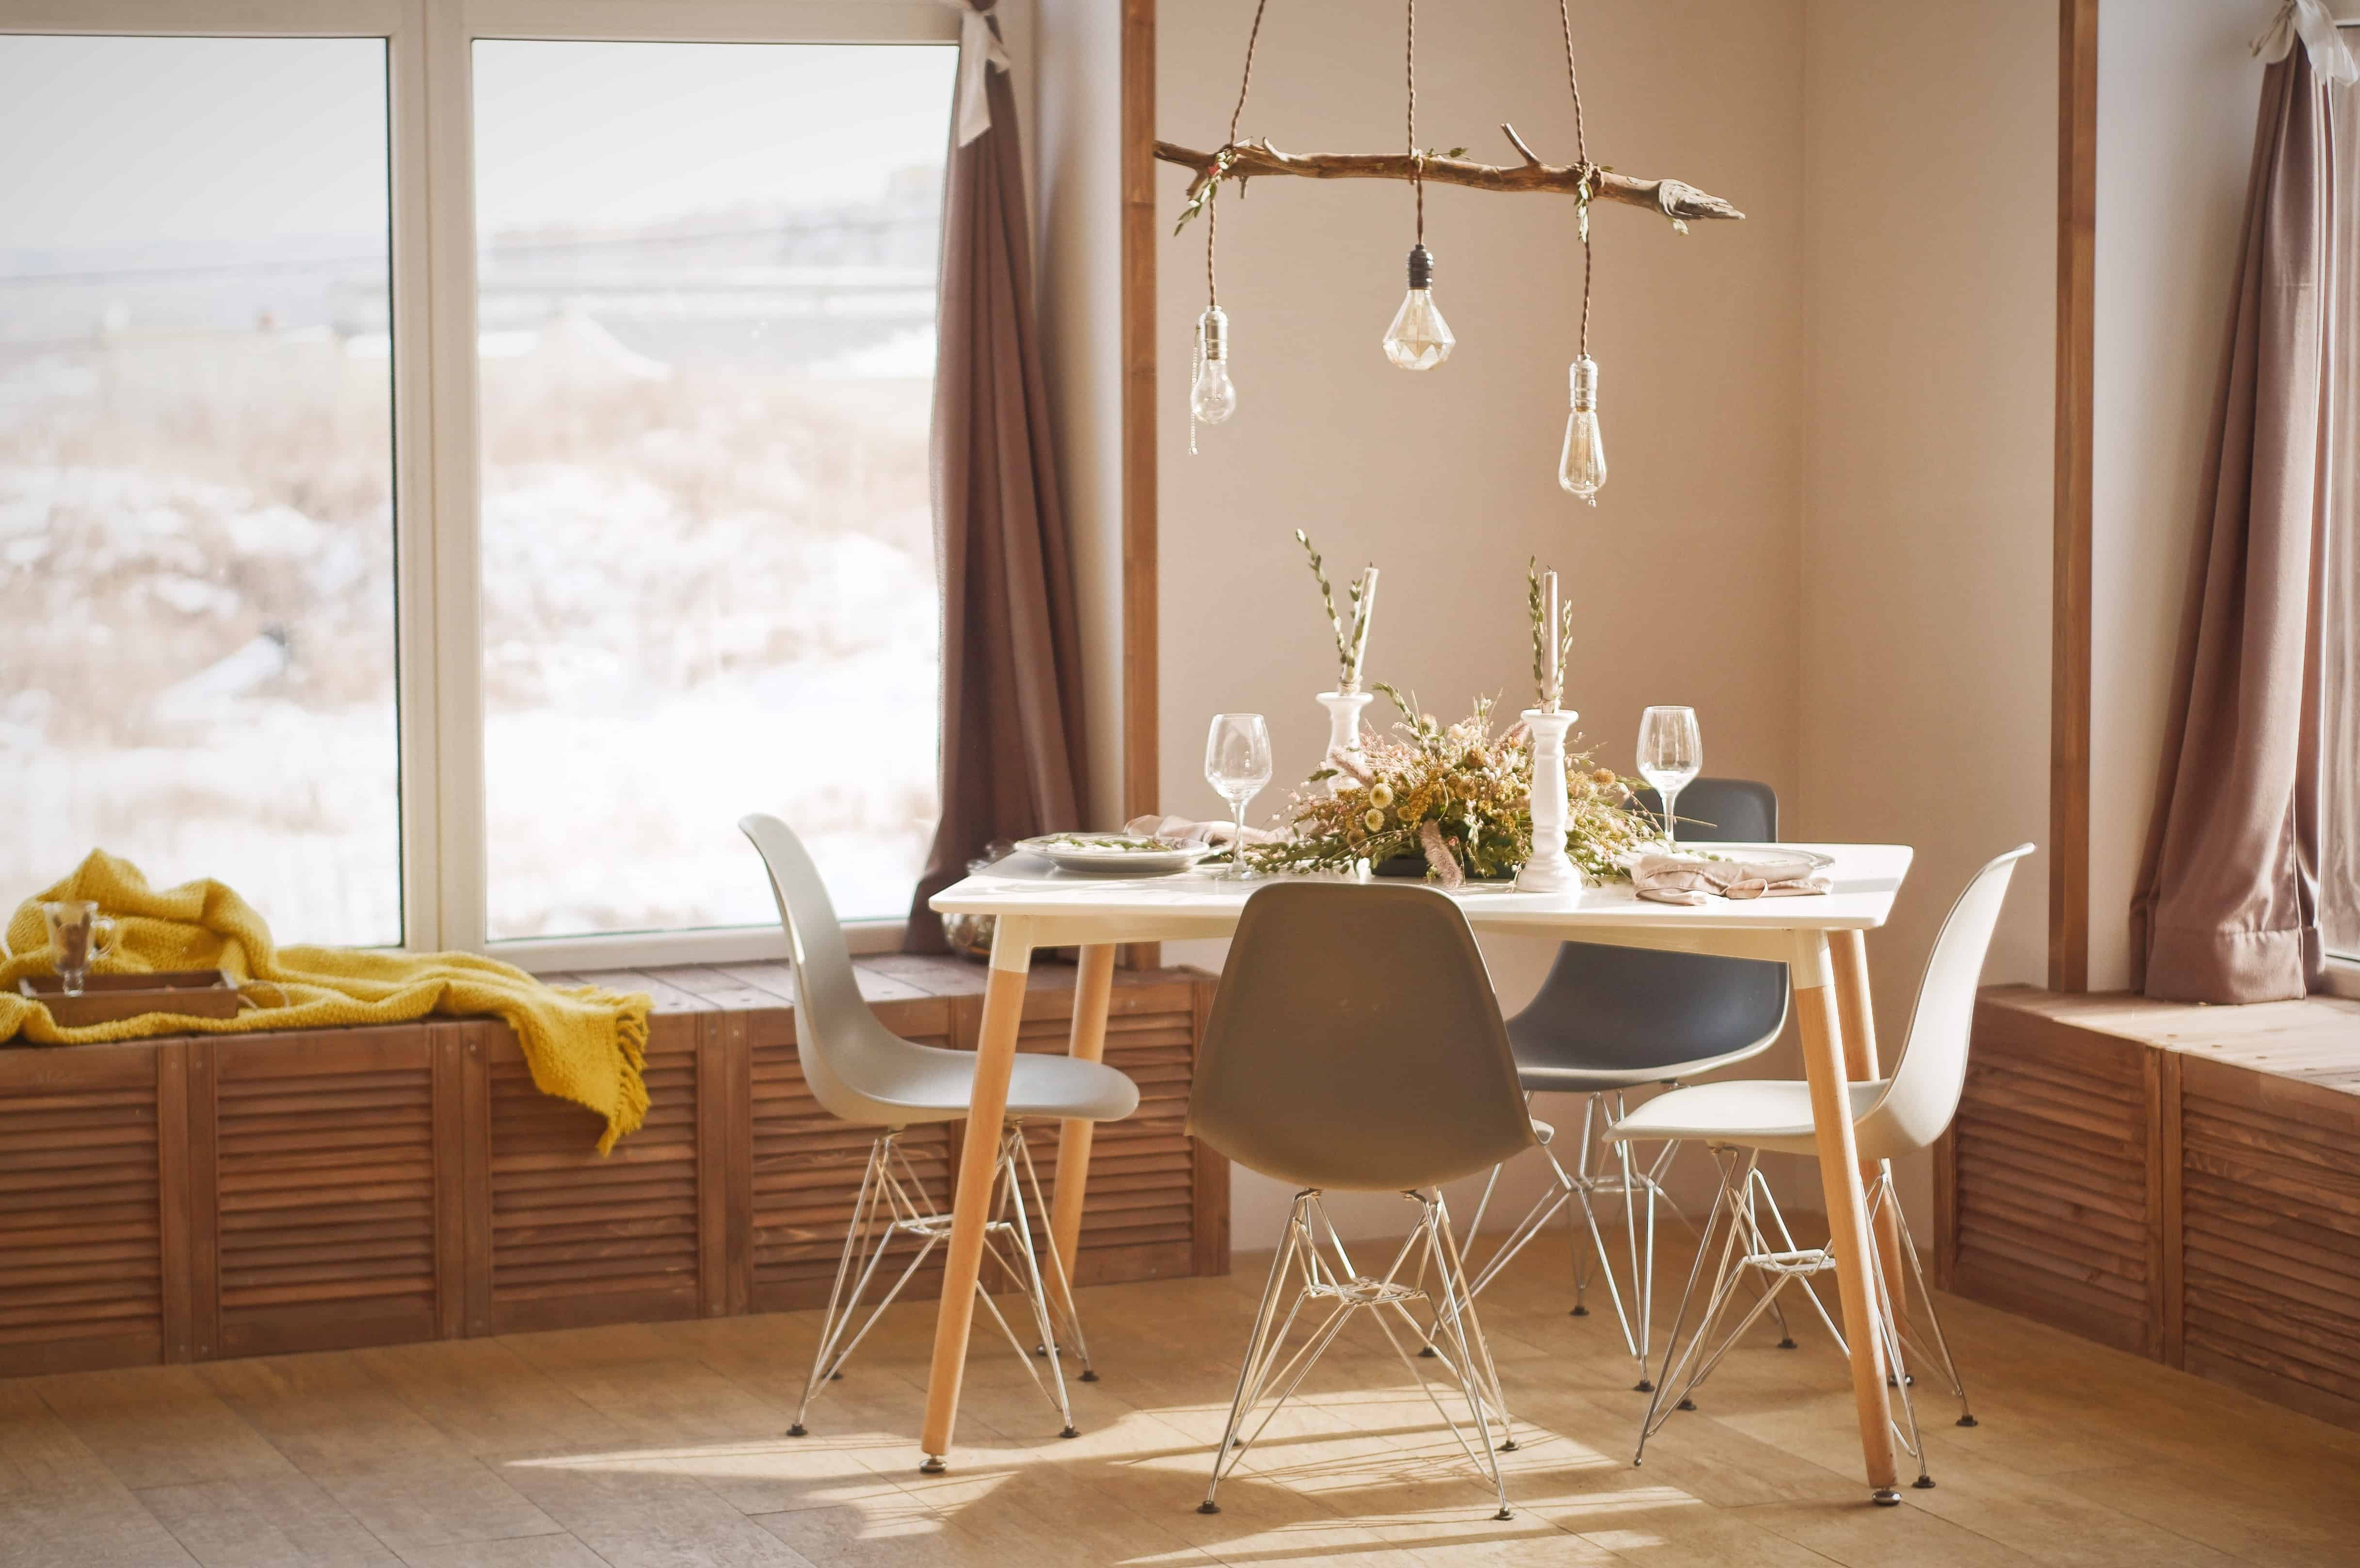 Home Makeover: Why Furniture Rental Is a Great Option: Dinning table set